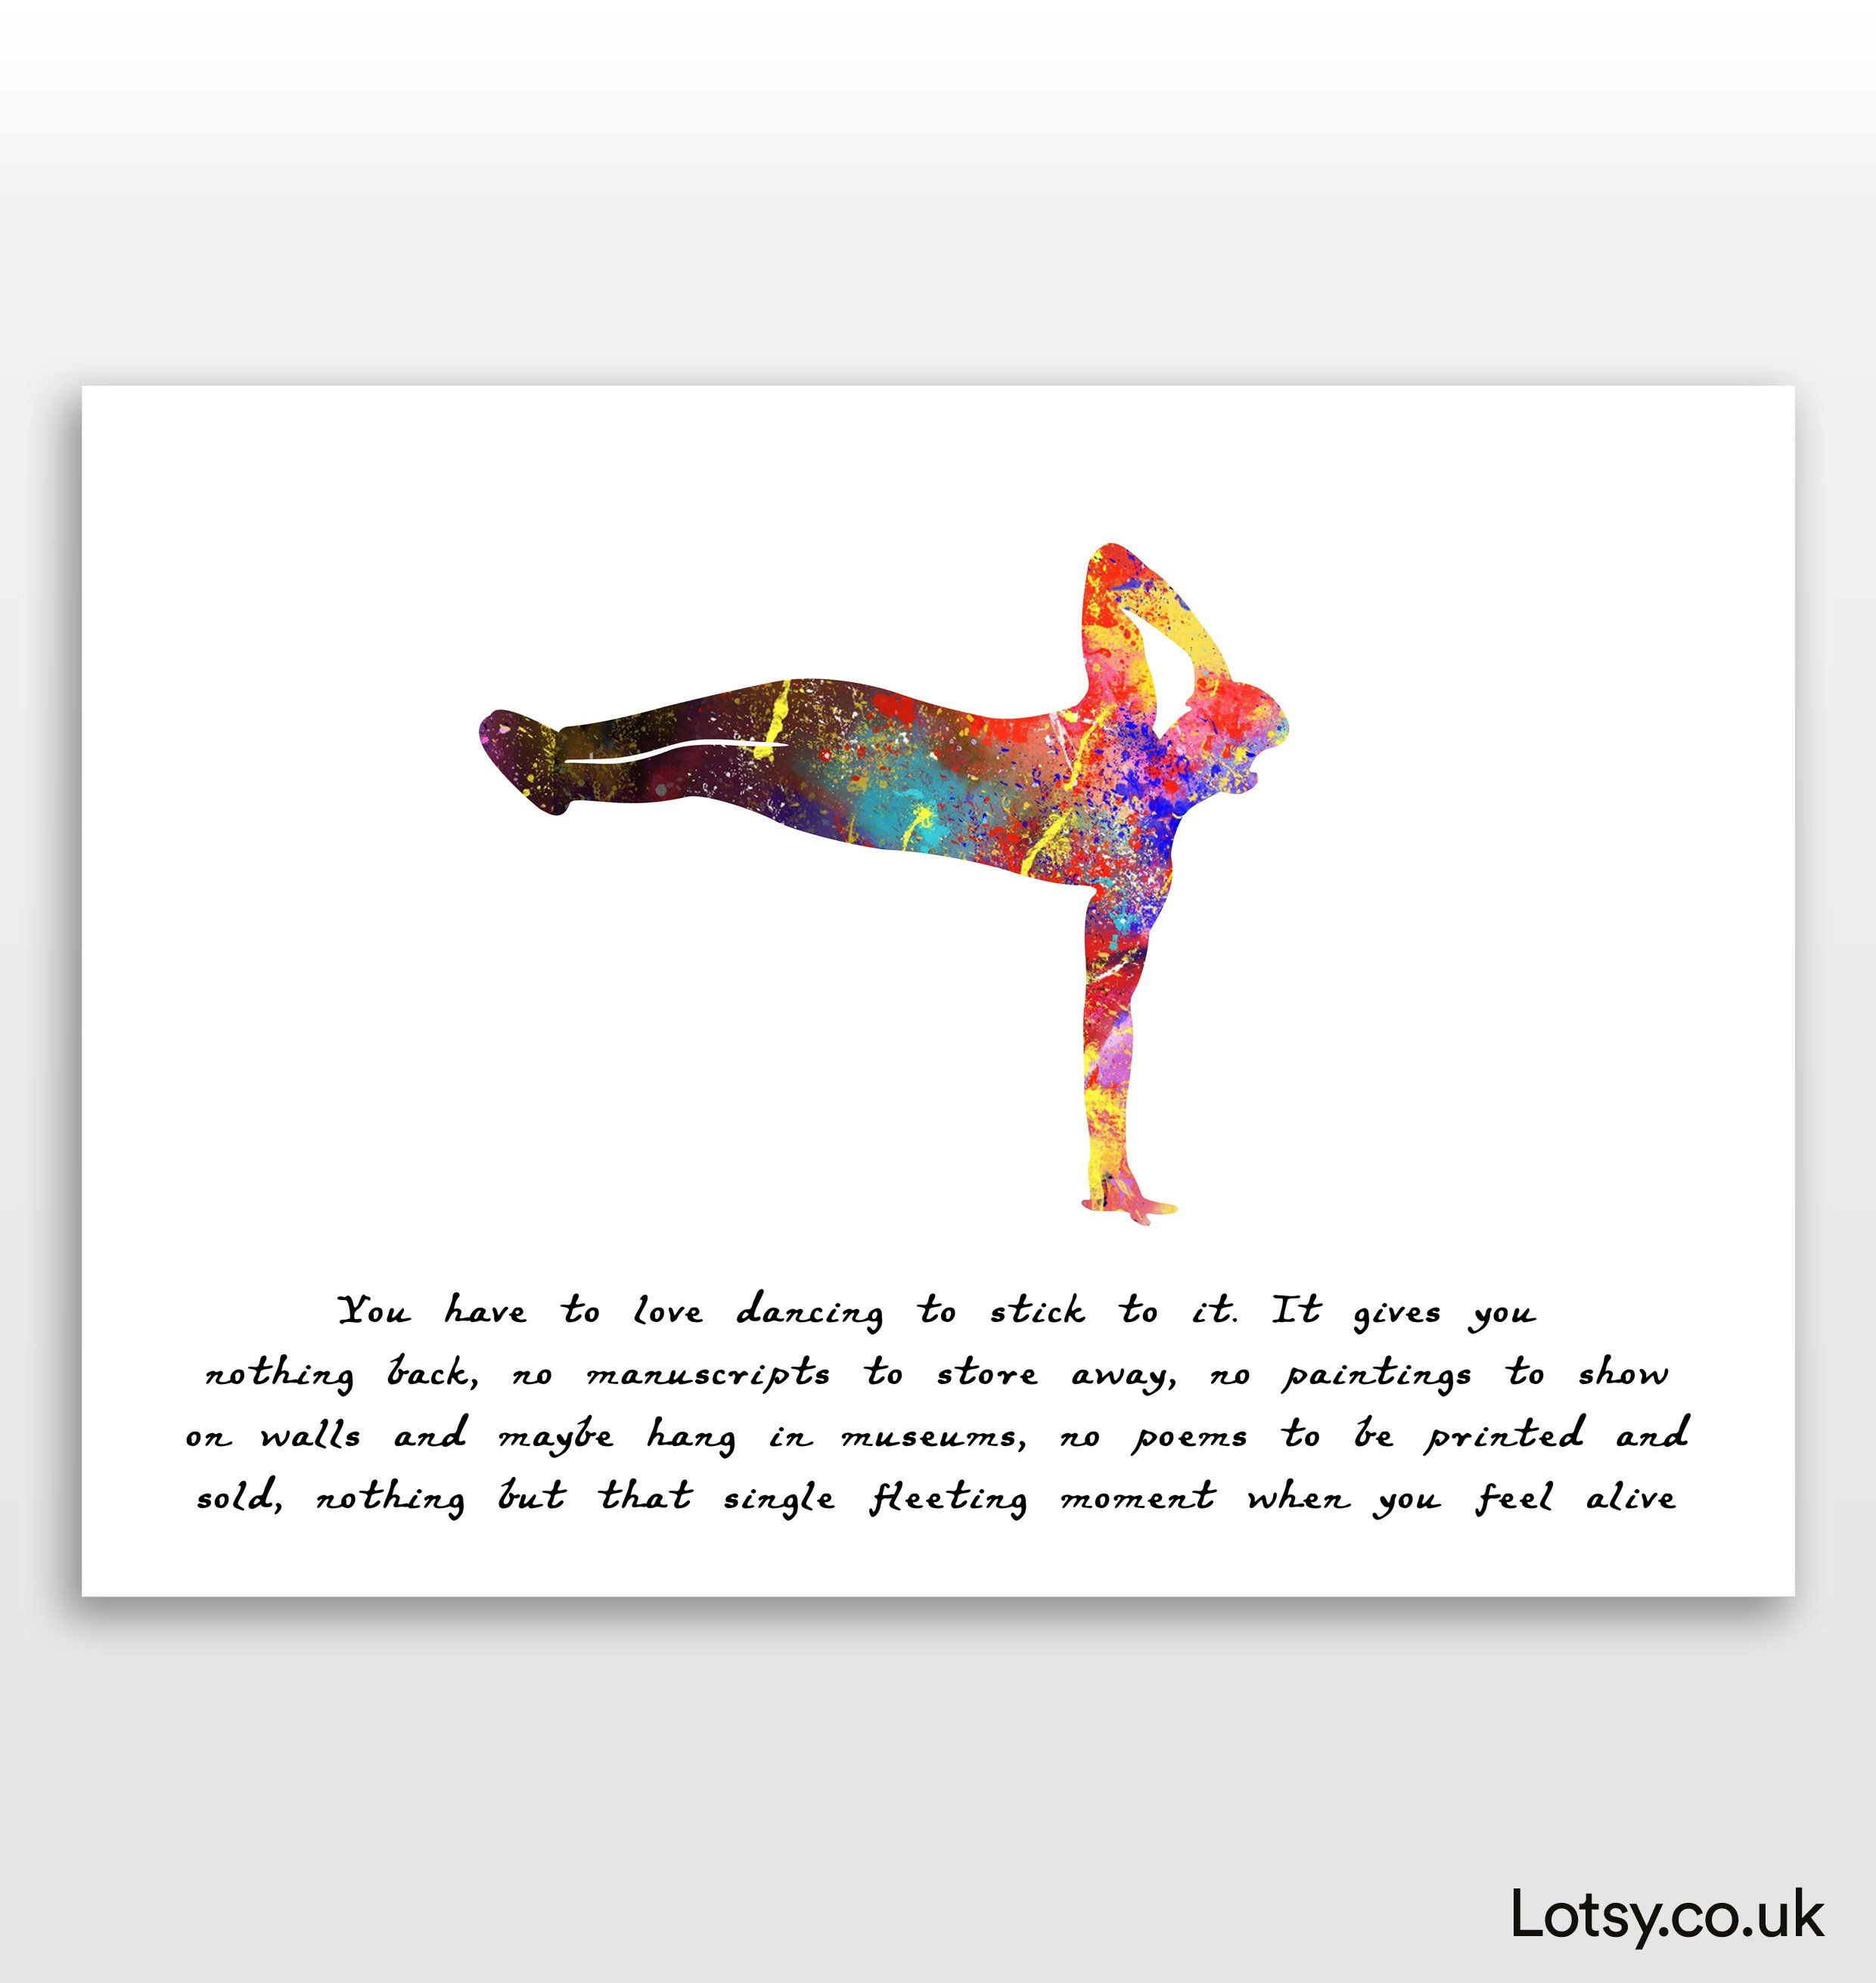 Dancer Quote - You have to love dancing to stick to it. It gives you nothing back - A3 - (297mm x 420mm) (11.7inch x 16.5inch)